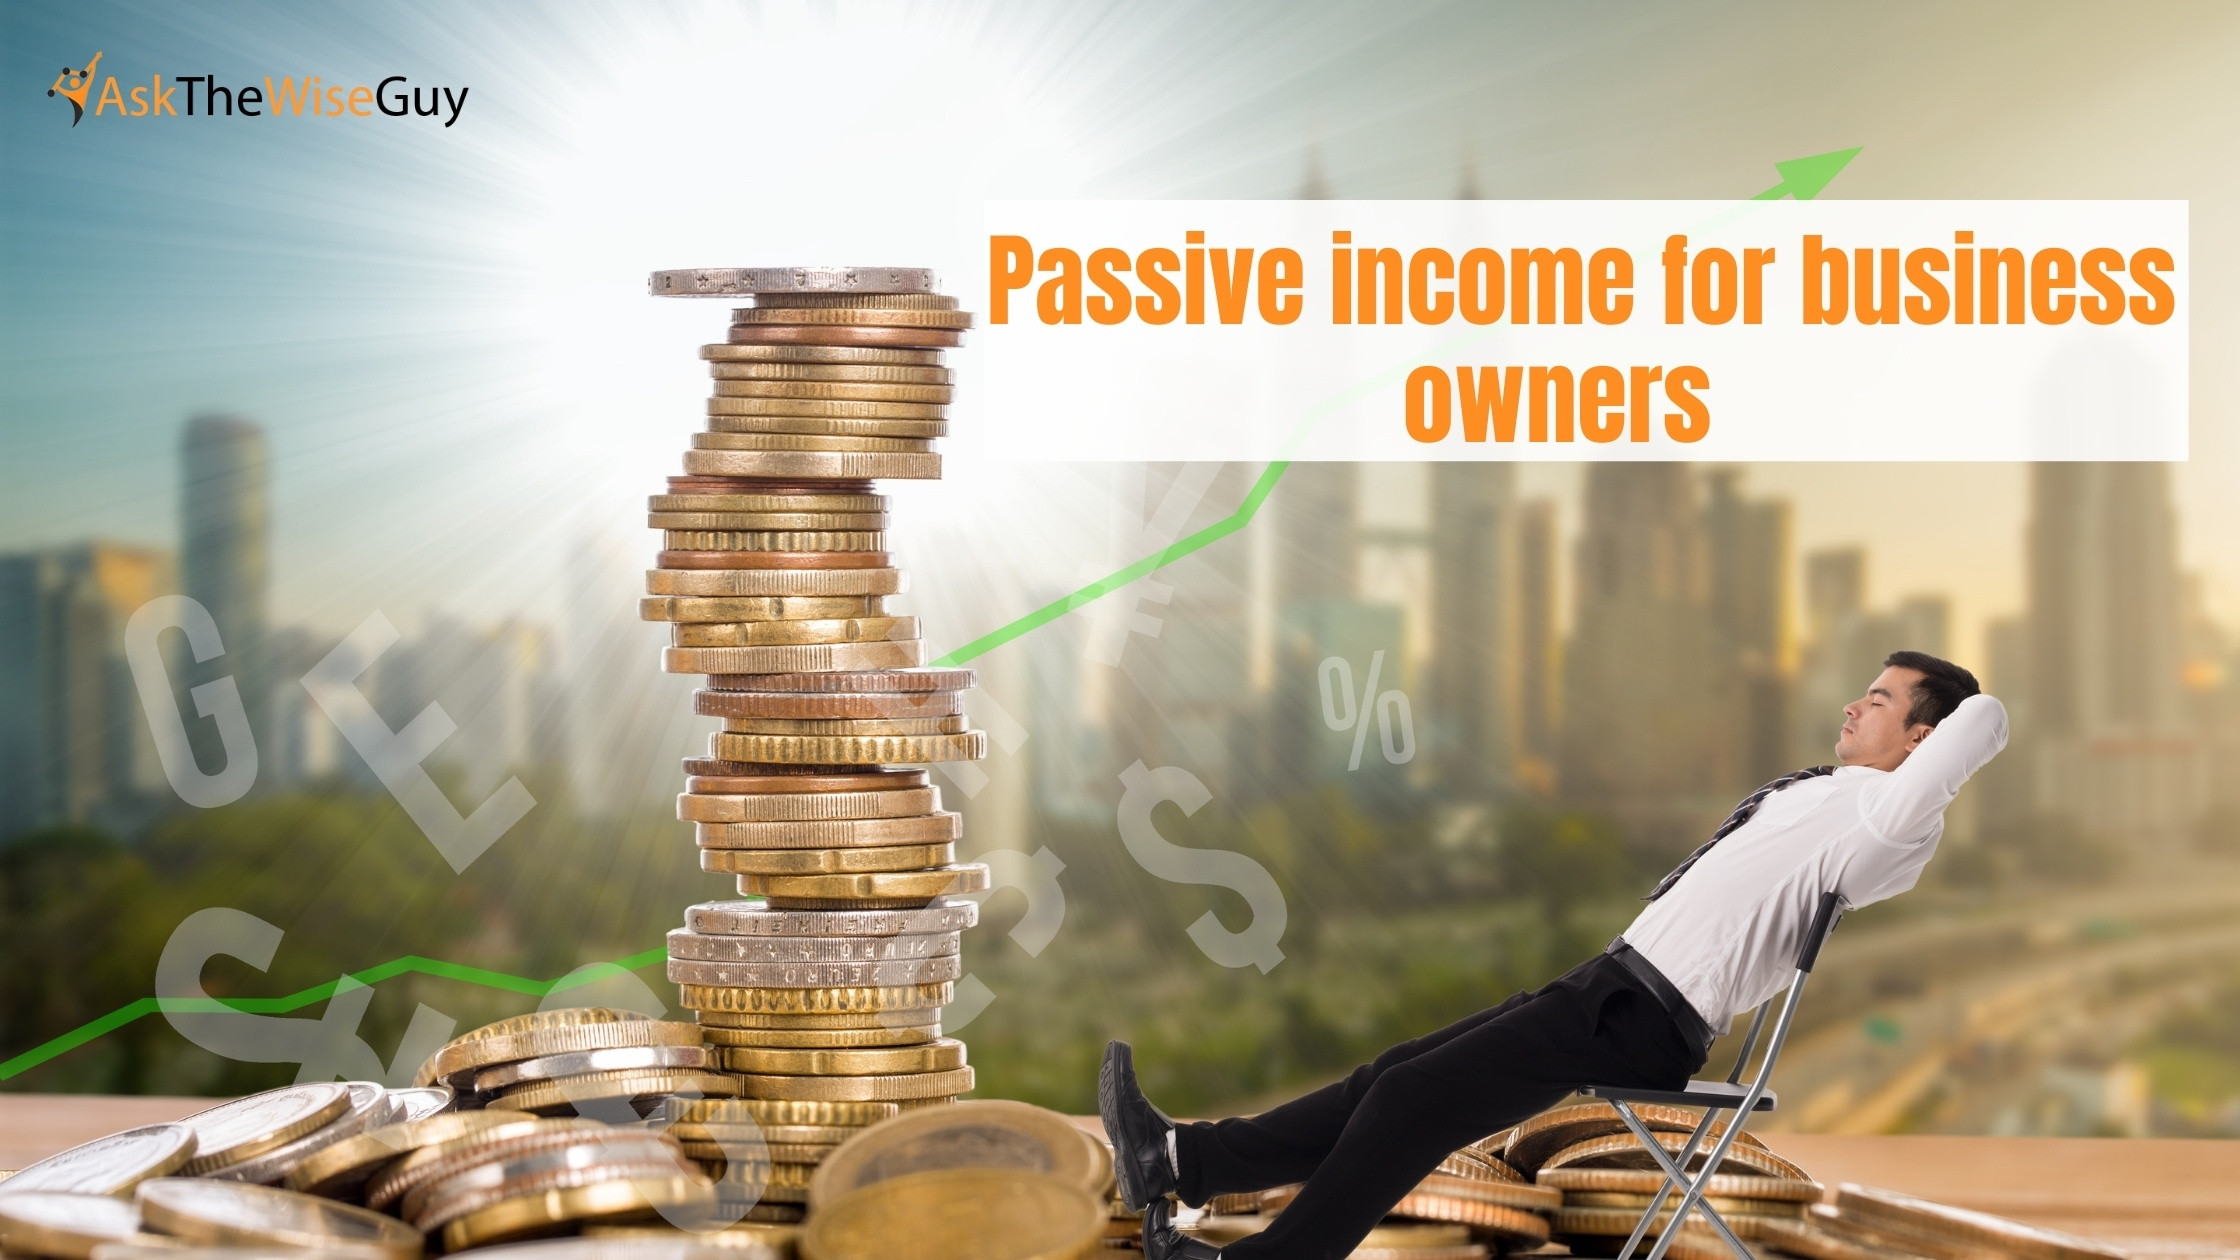 Is Financial Freedom for Business Owners important?